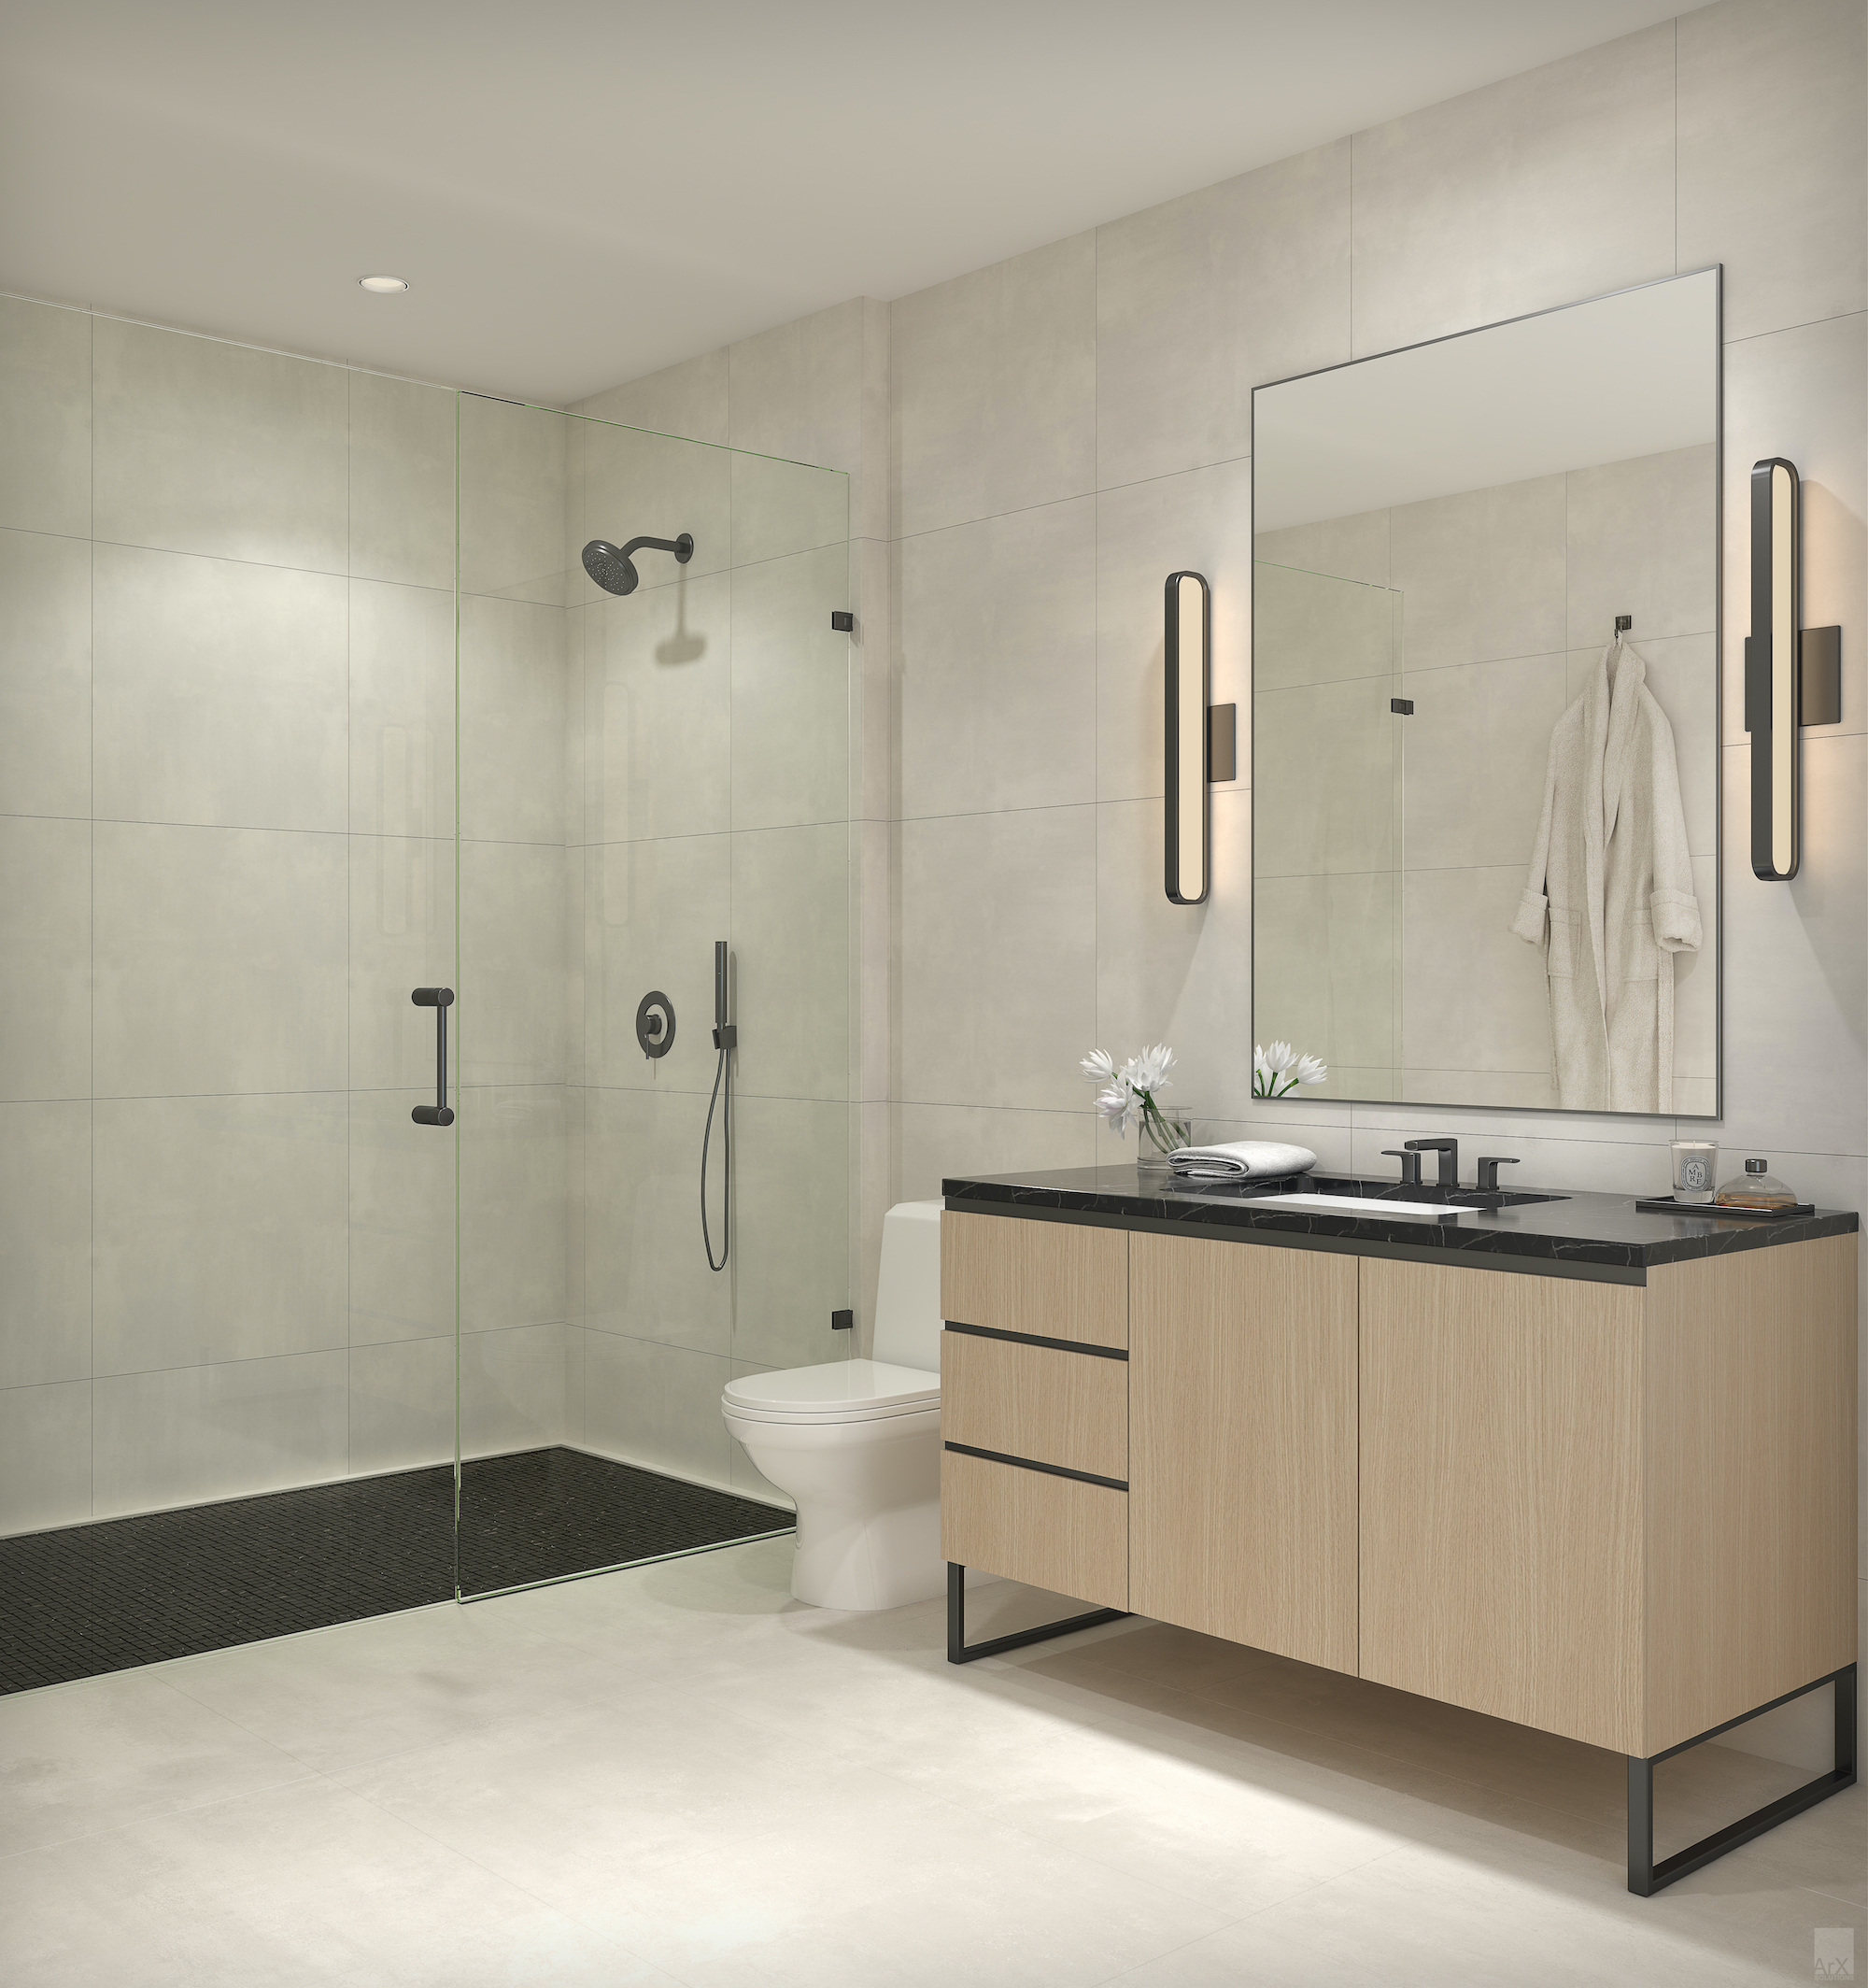 19_Related-Parcel_C-03-BathRoom-02